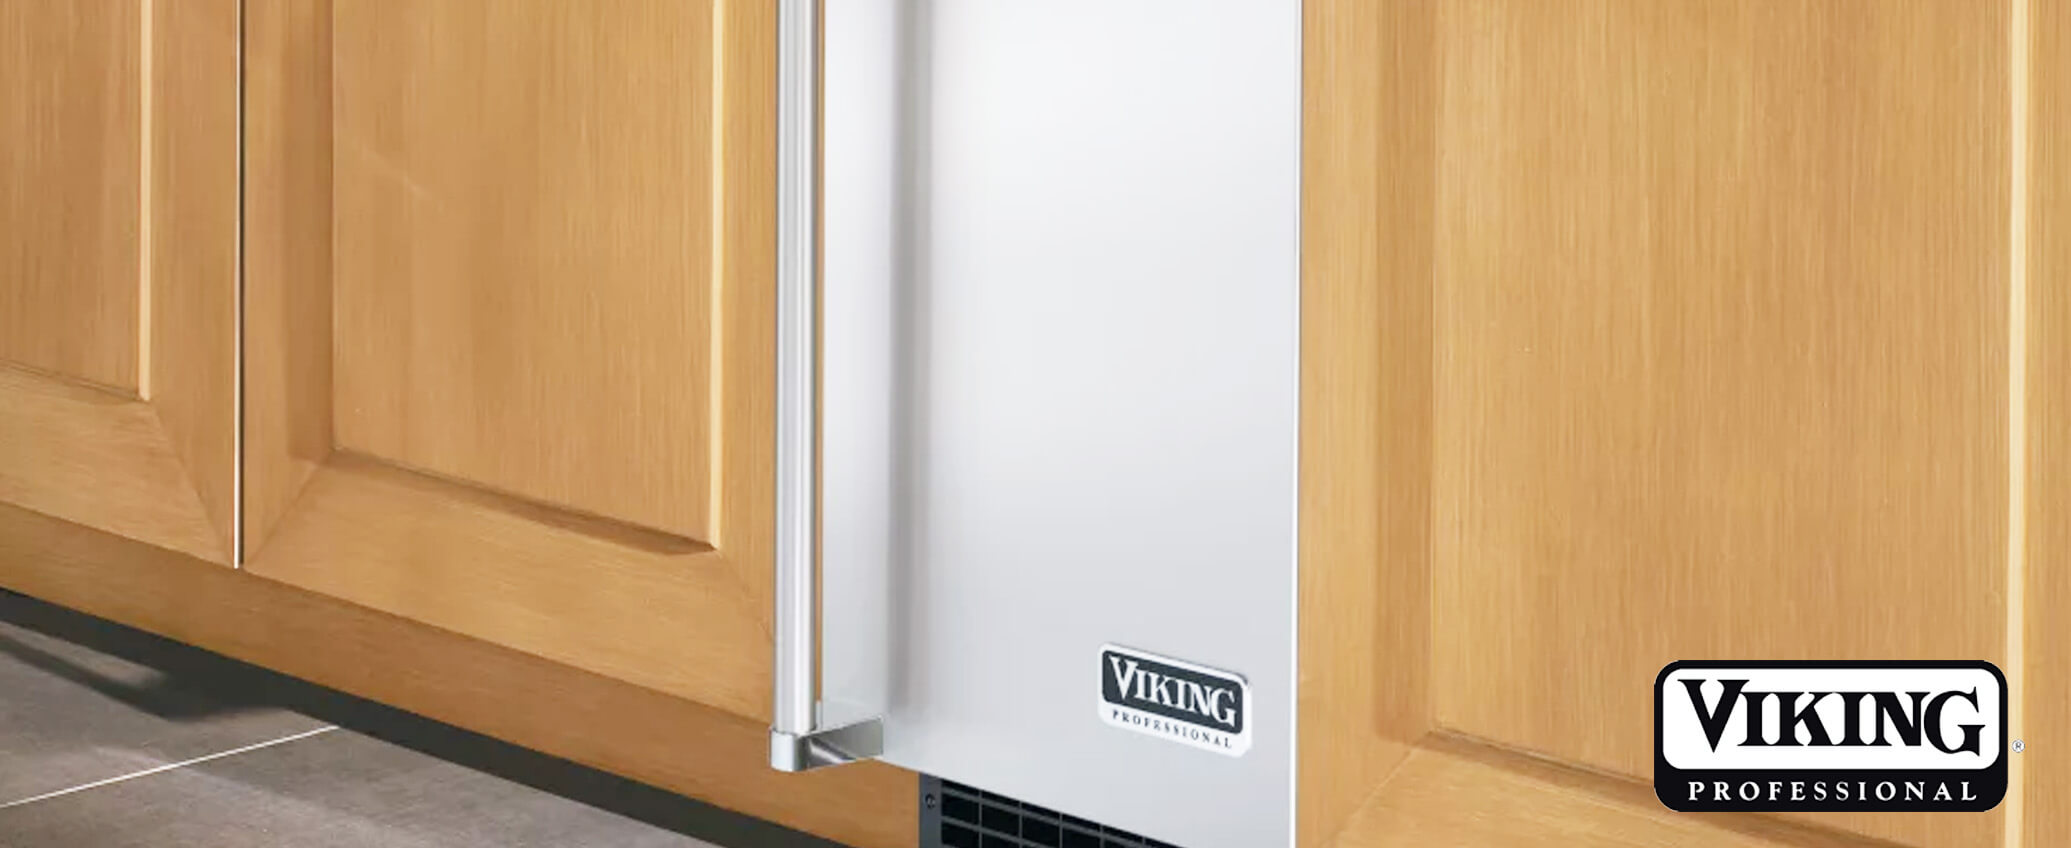 What to do when the Viking freezer ice maker not working? | Professional Viking Repair